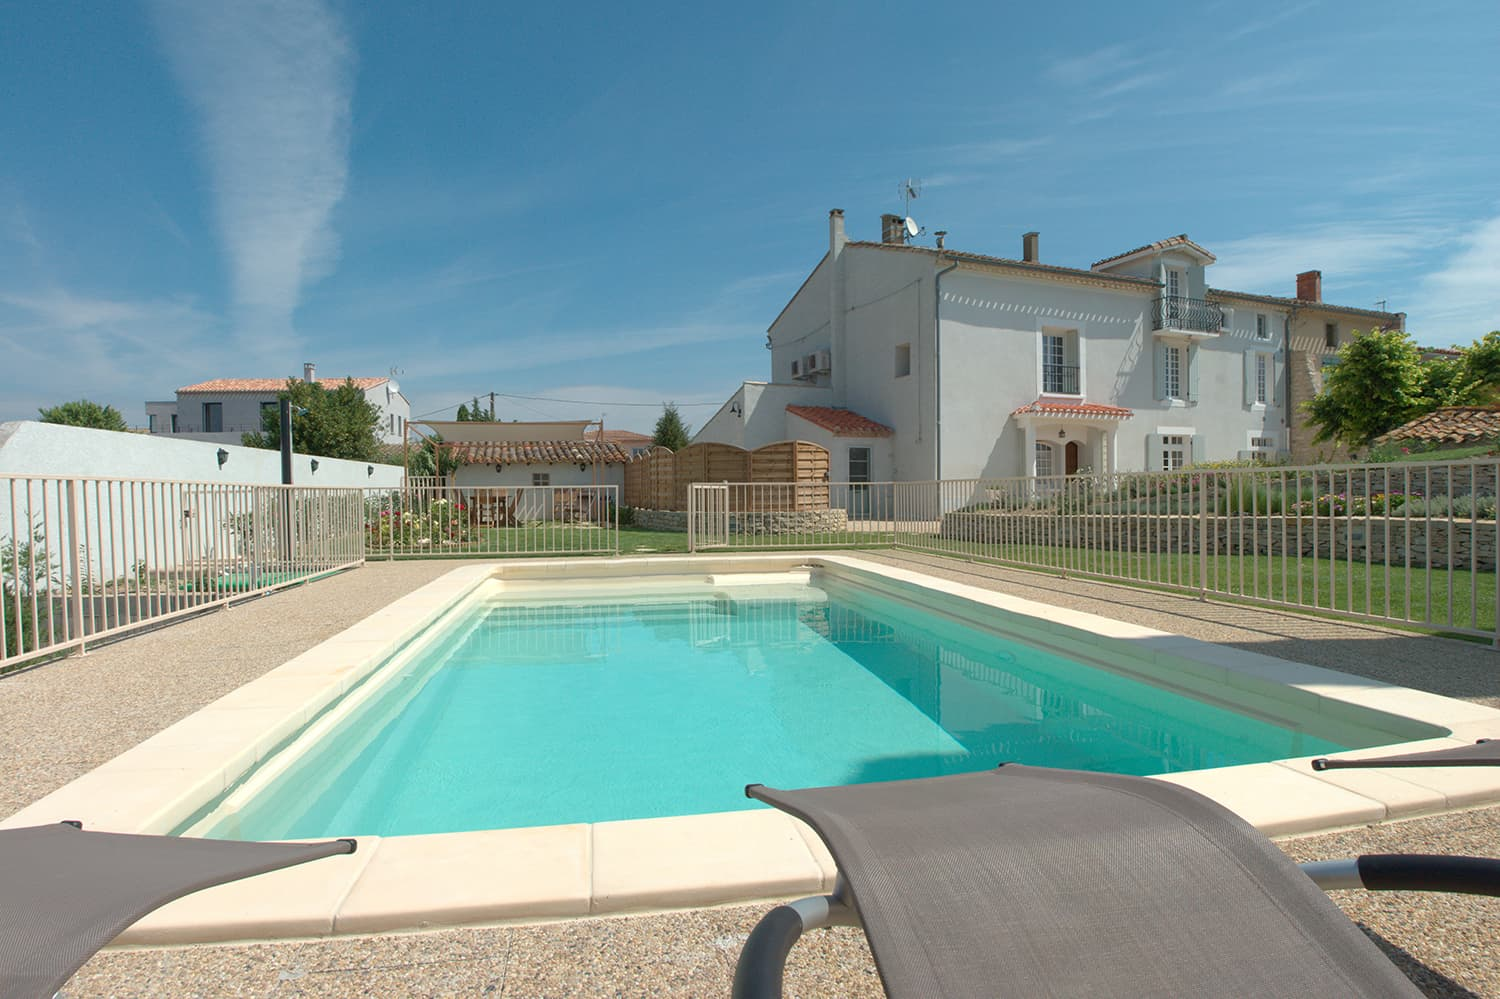 Holiday in Occitanie with private, heated pool